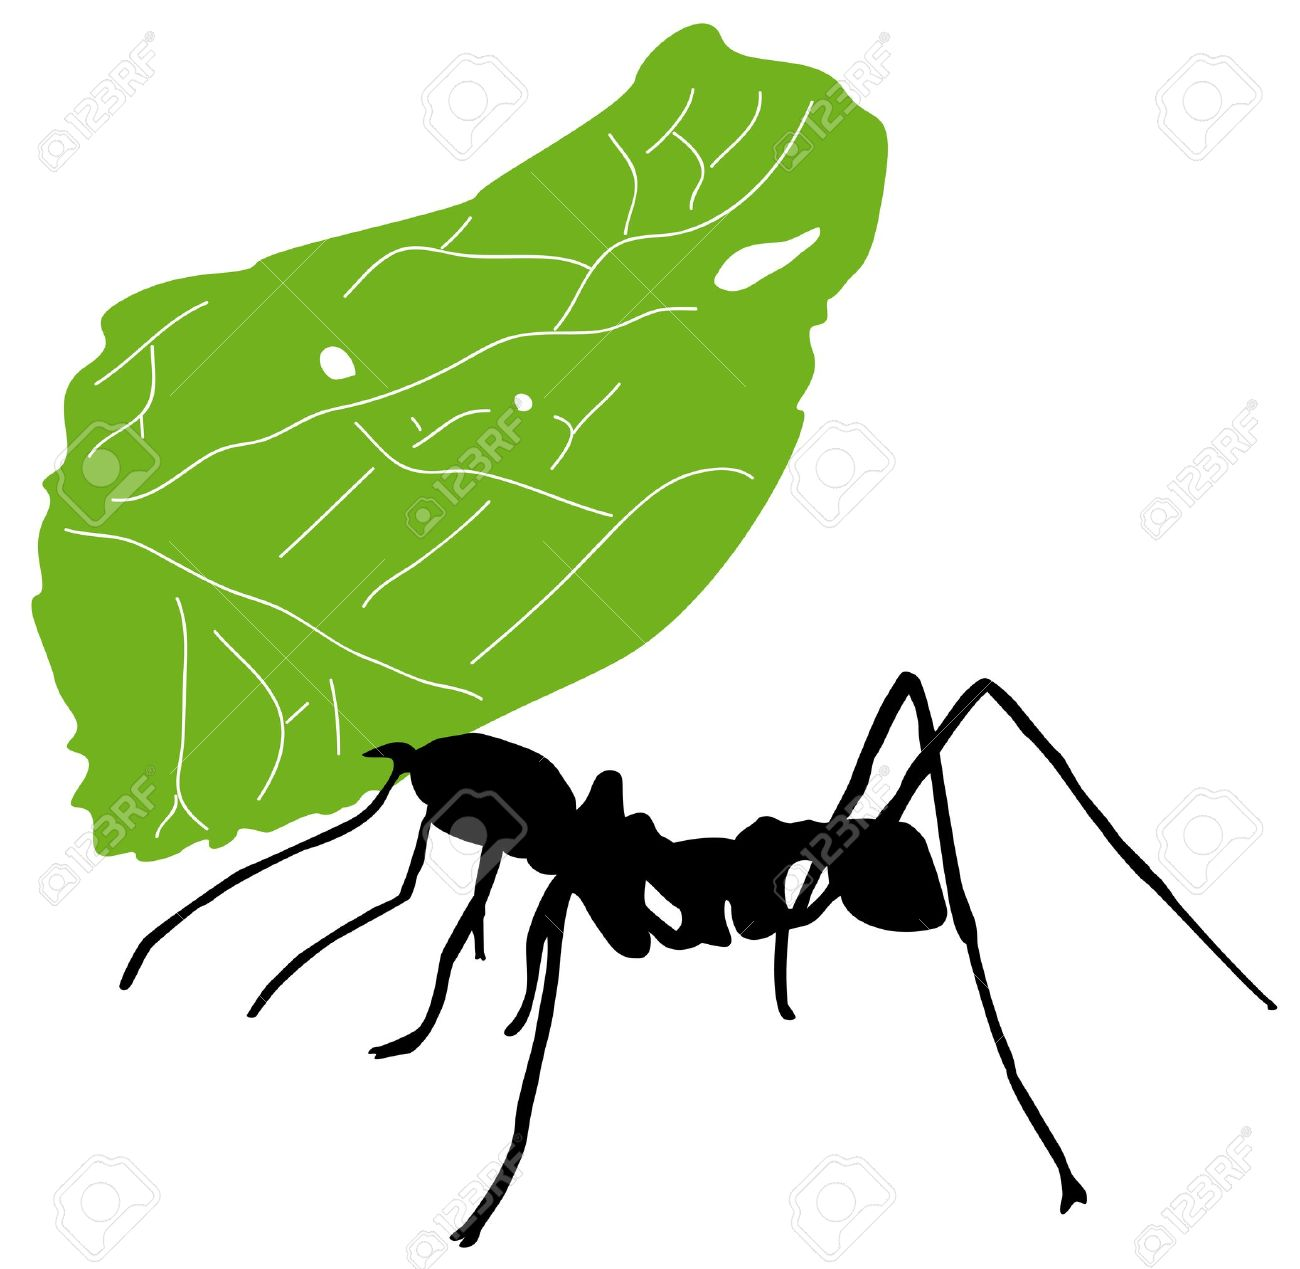 Leaf Cutter Ants Clipart.